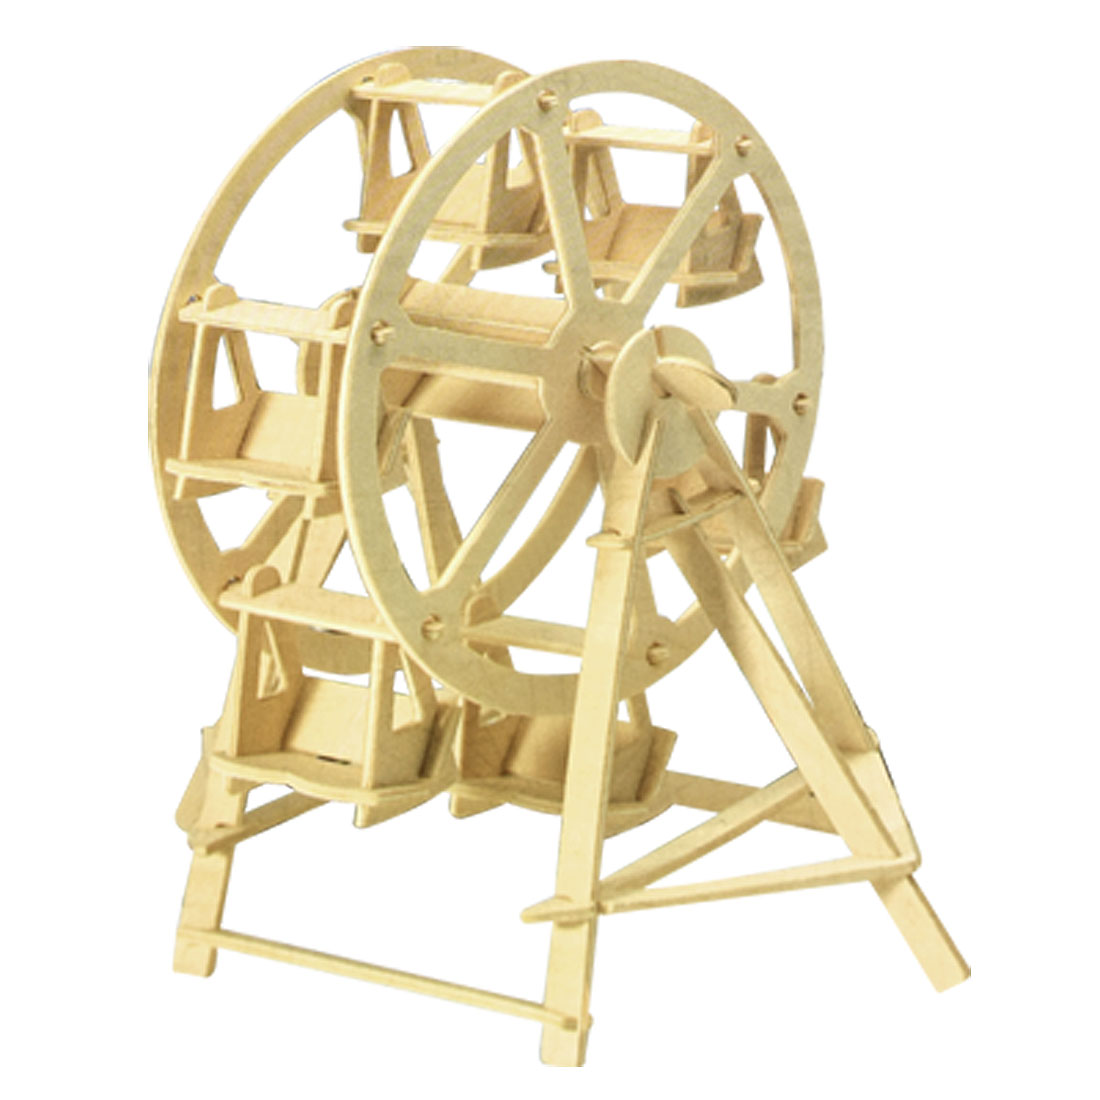 Children Puzzled Ferris Wheel Model 3D Wood Puzzle Toy Construction Kit